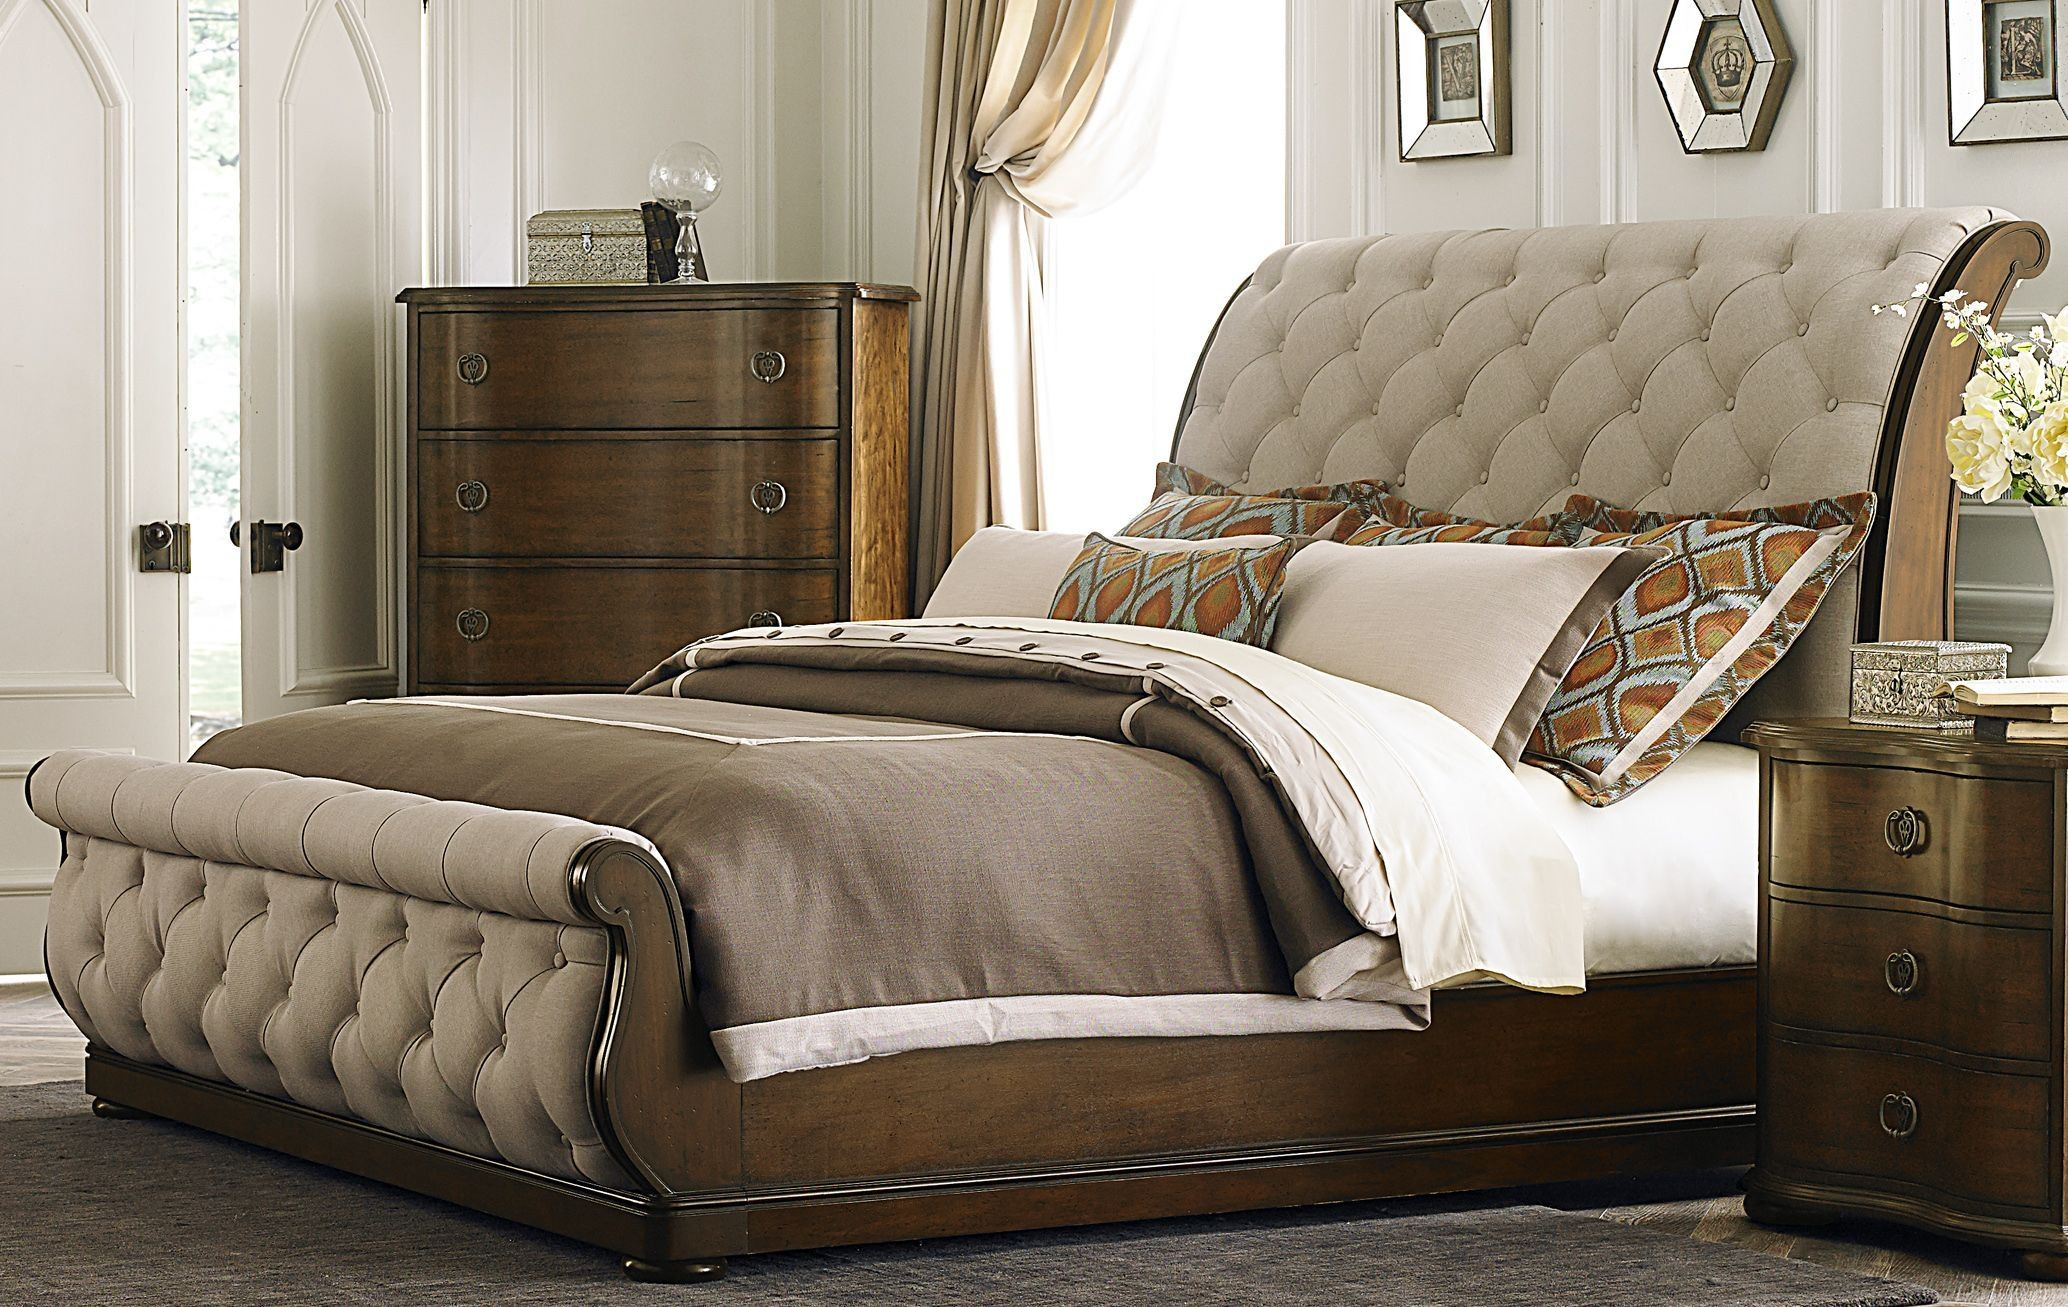 upholstered bedroom furniture cotswold upholstered sleigh bedroom set from liberty 545 13696